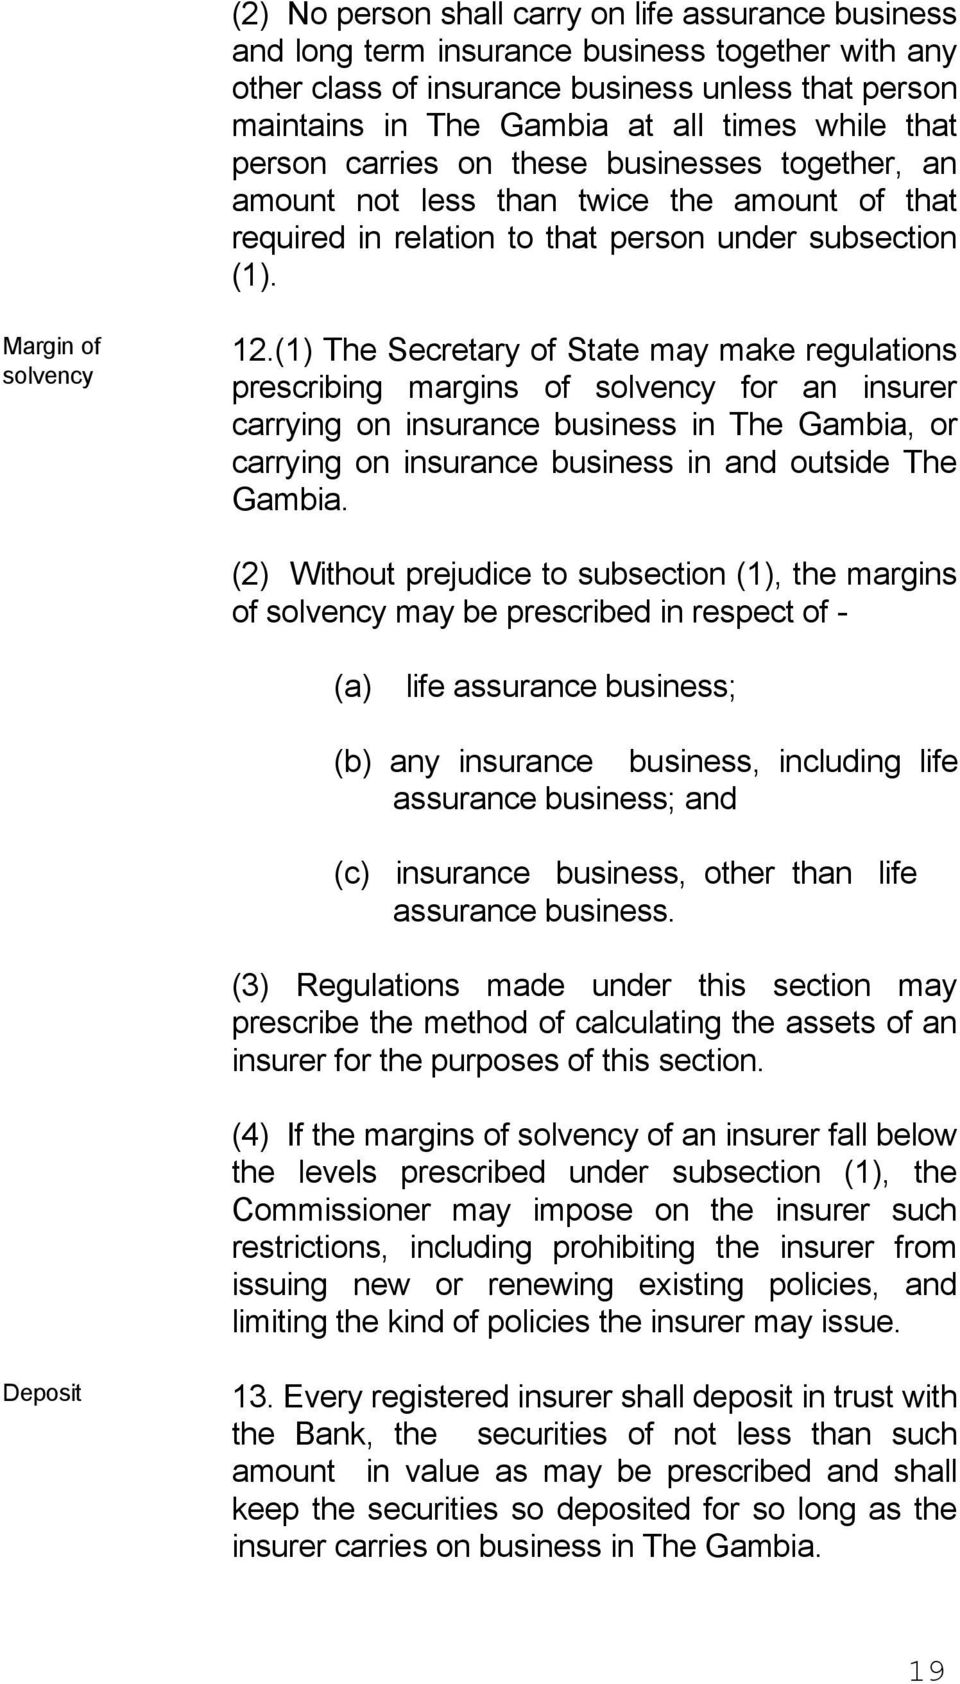 (1) The Secretary of State may make regulations prescribing margins of solvency for an insurer carrying on insurance business in The Gambia, or carrying on insurance business in and outside The